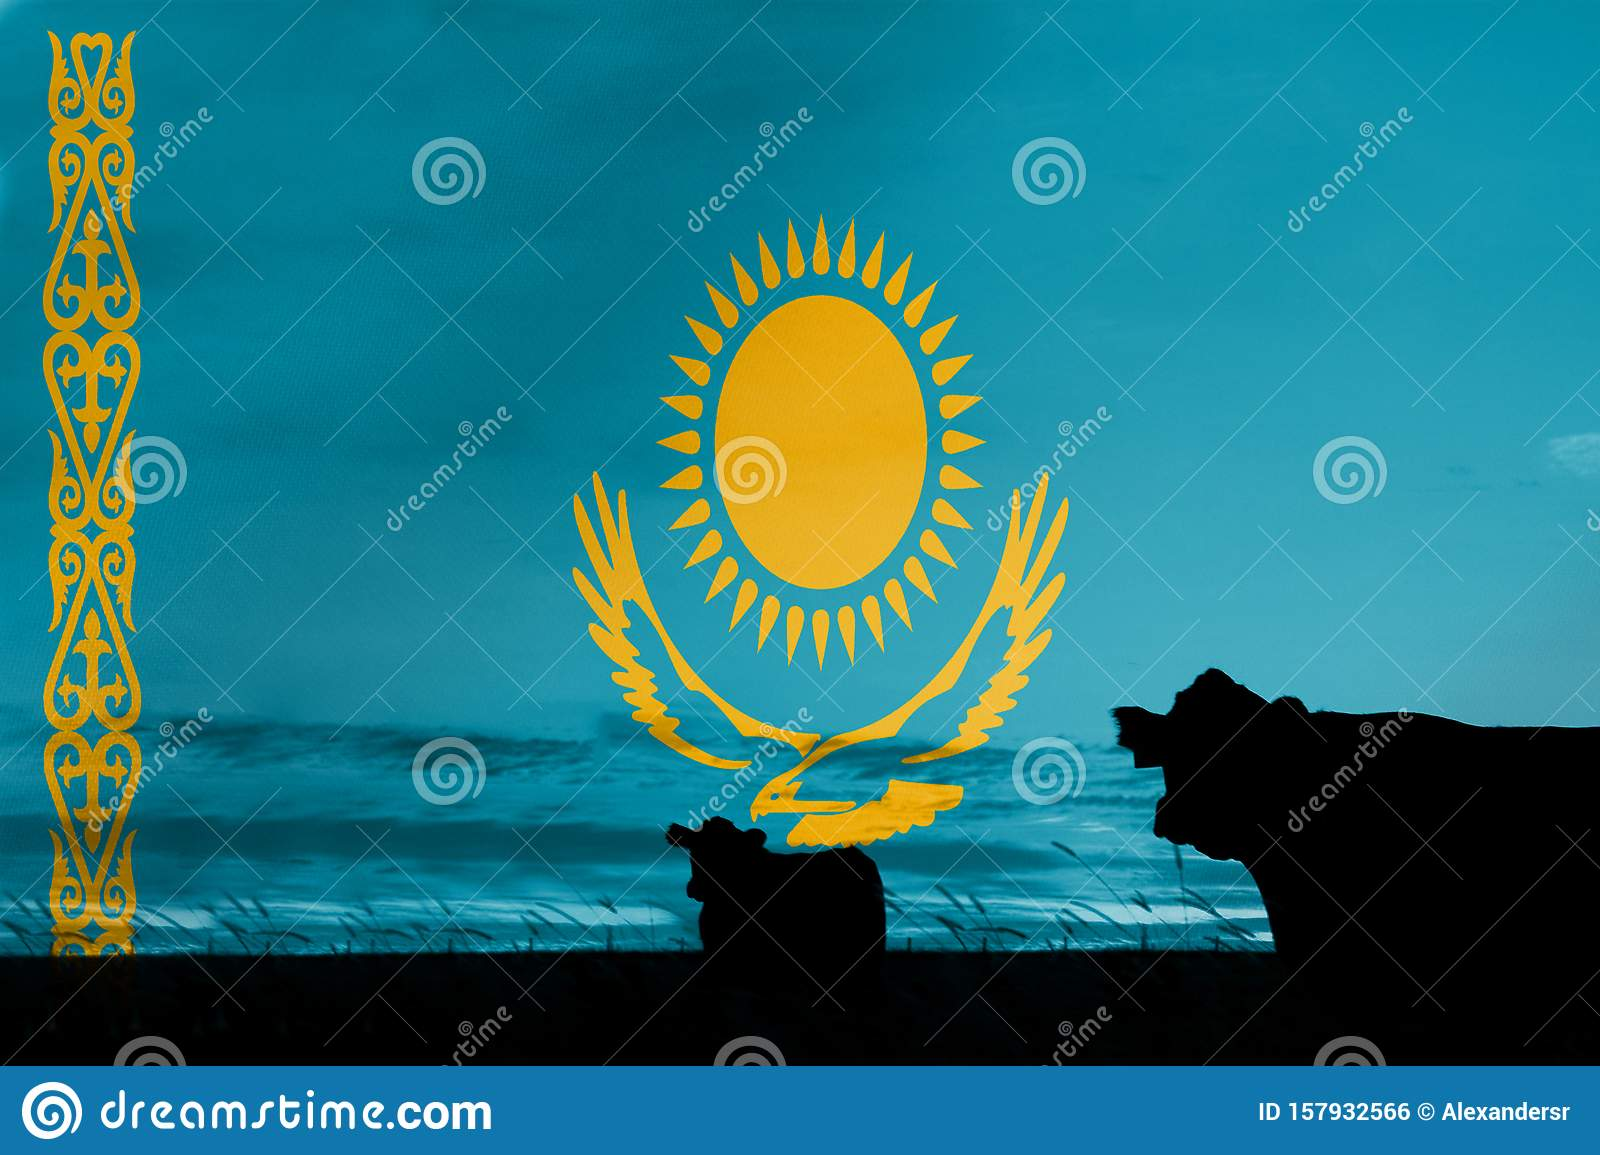 Consumption and production of cattle in countries with the flag of Kazakhstan